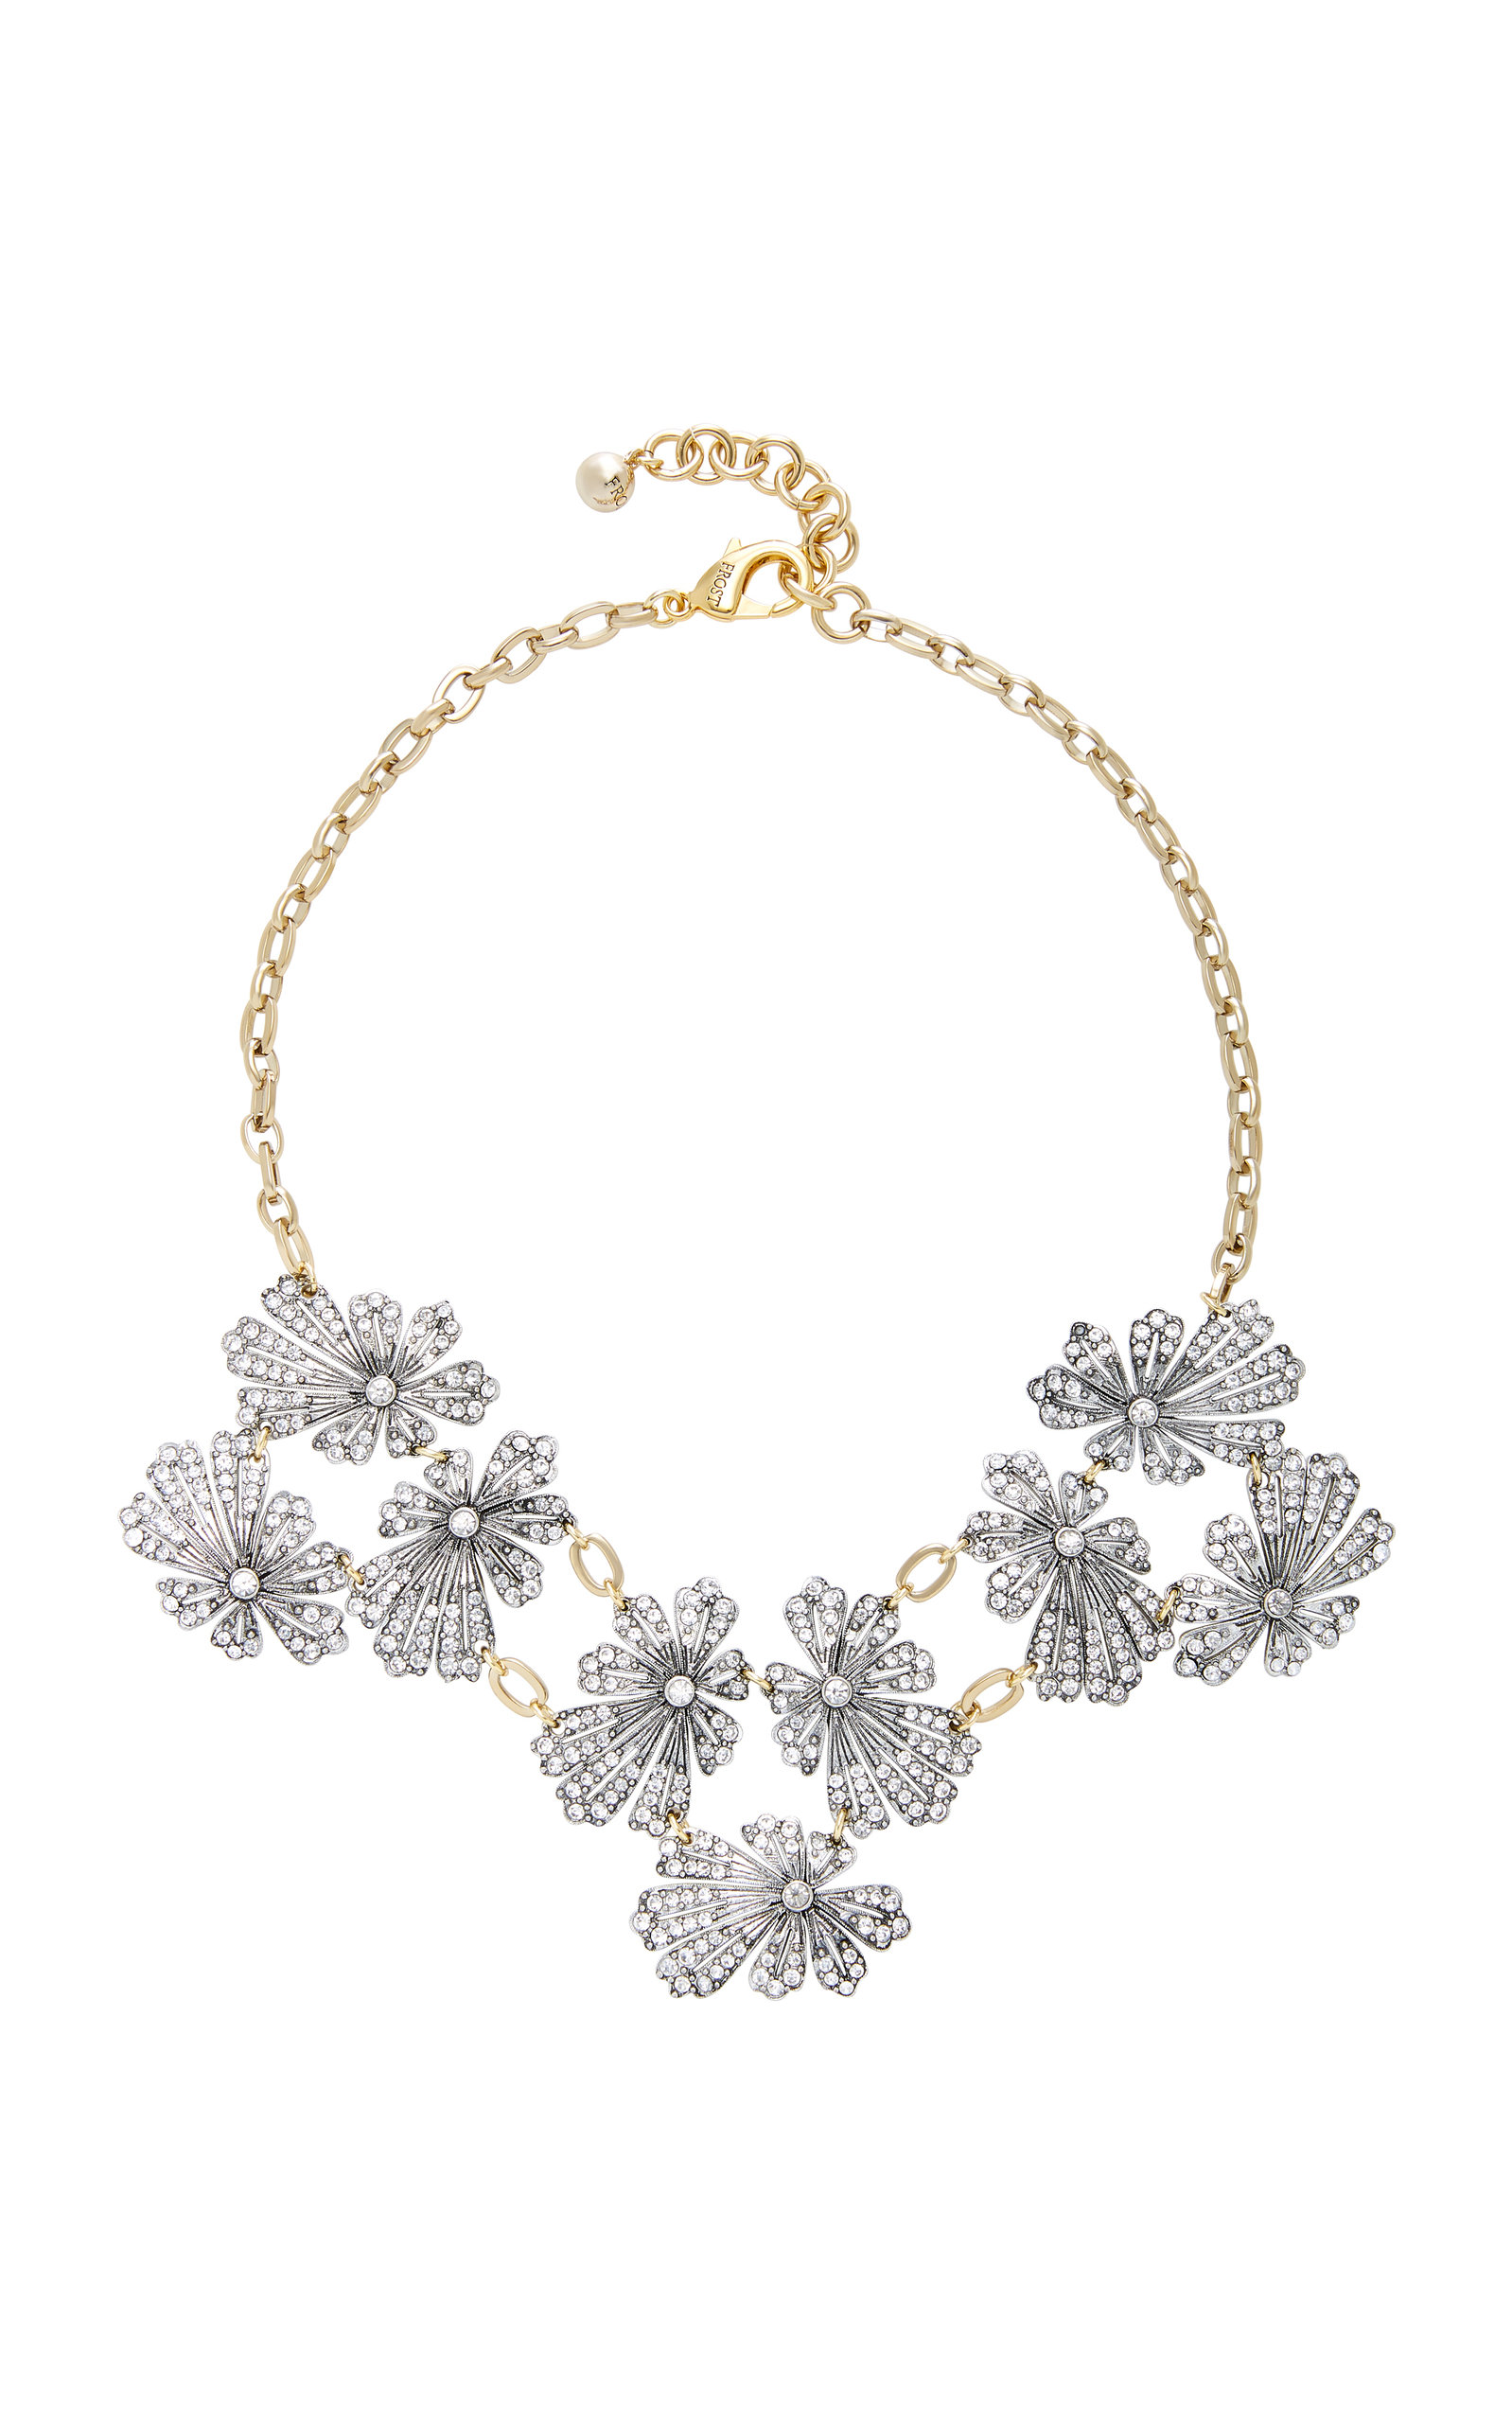 41f91cad48031 Camellia Silver and Gold-Plated Brass Necklace